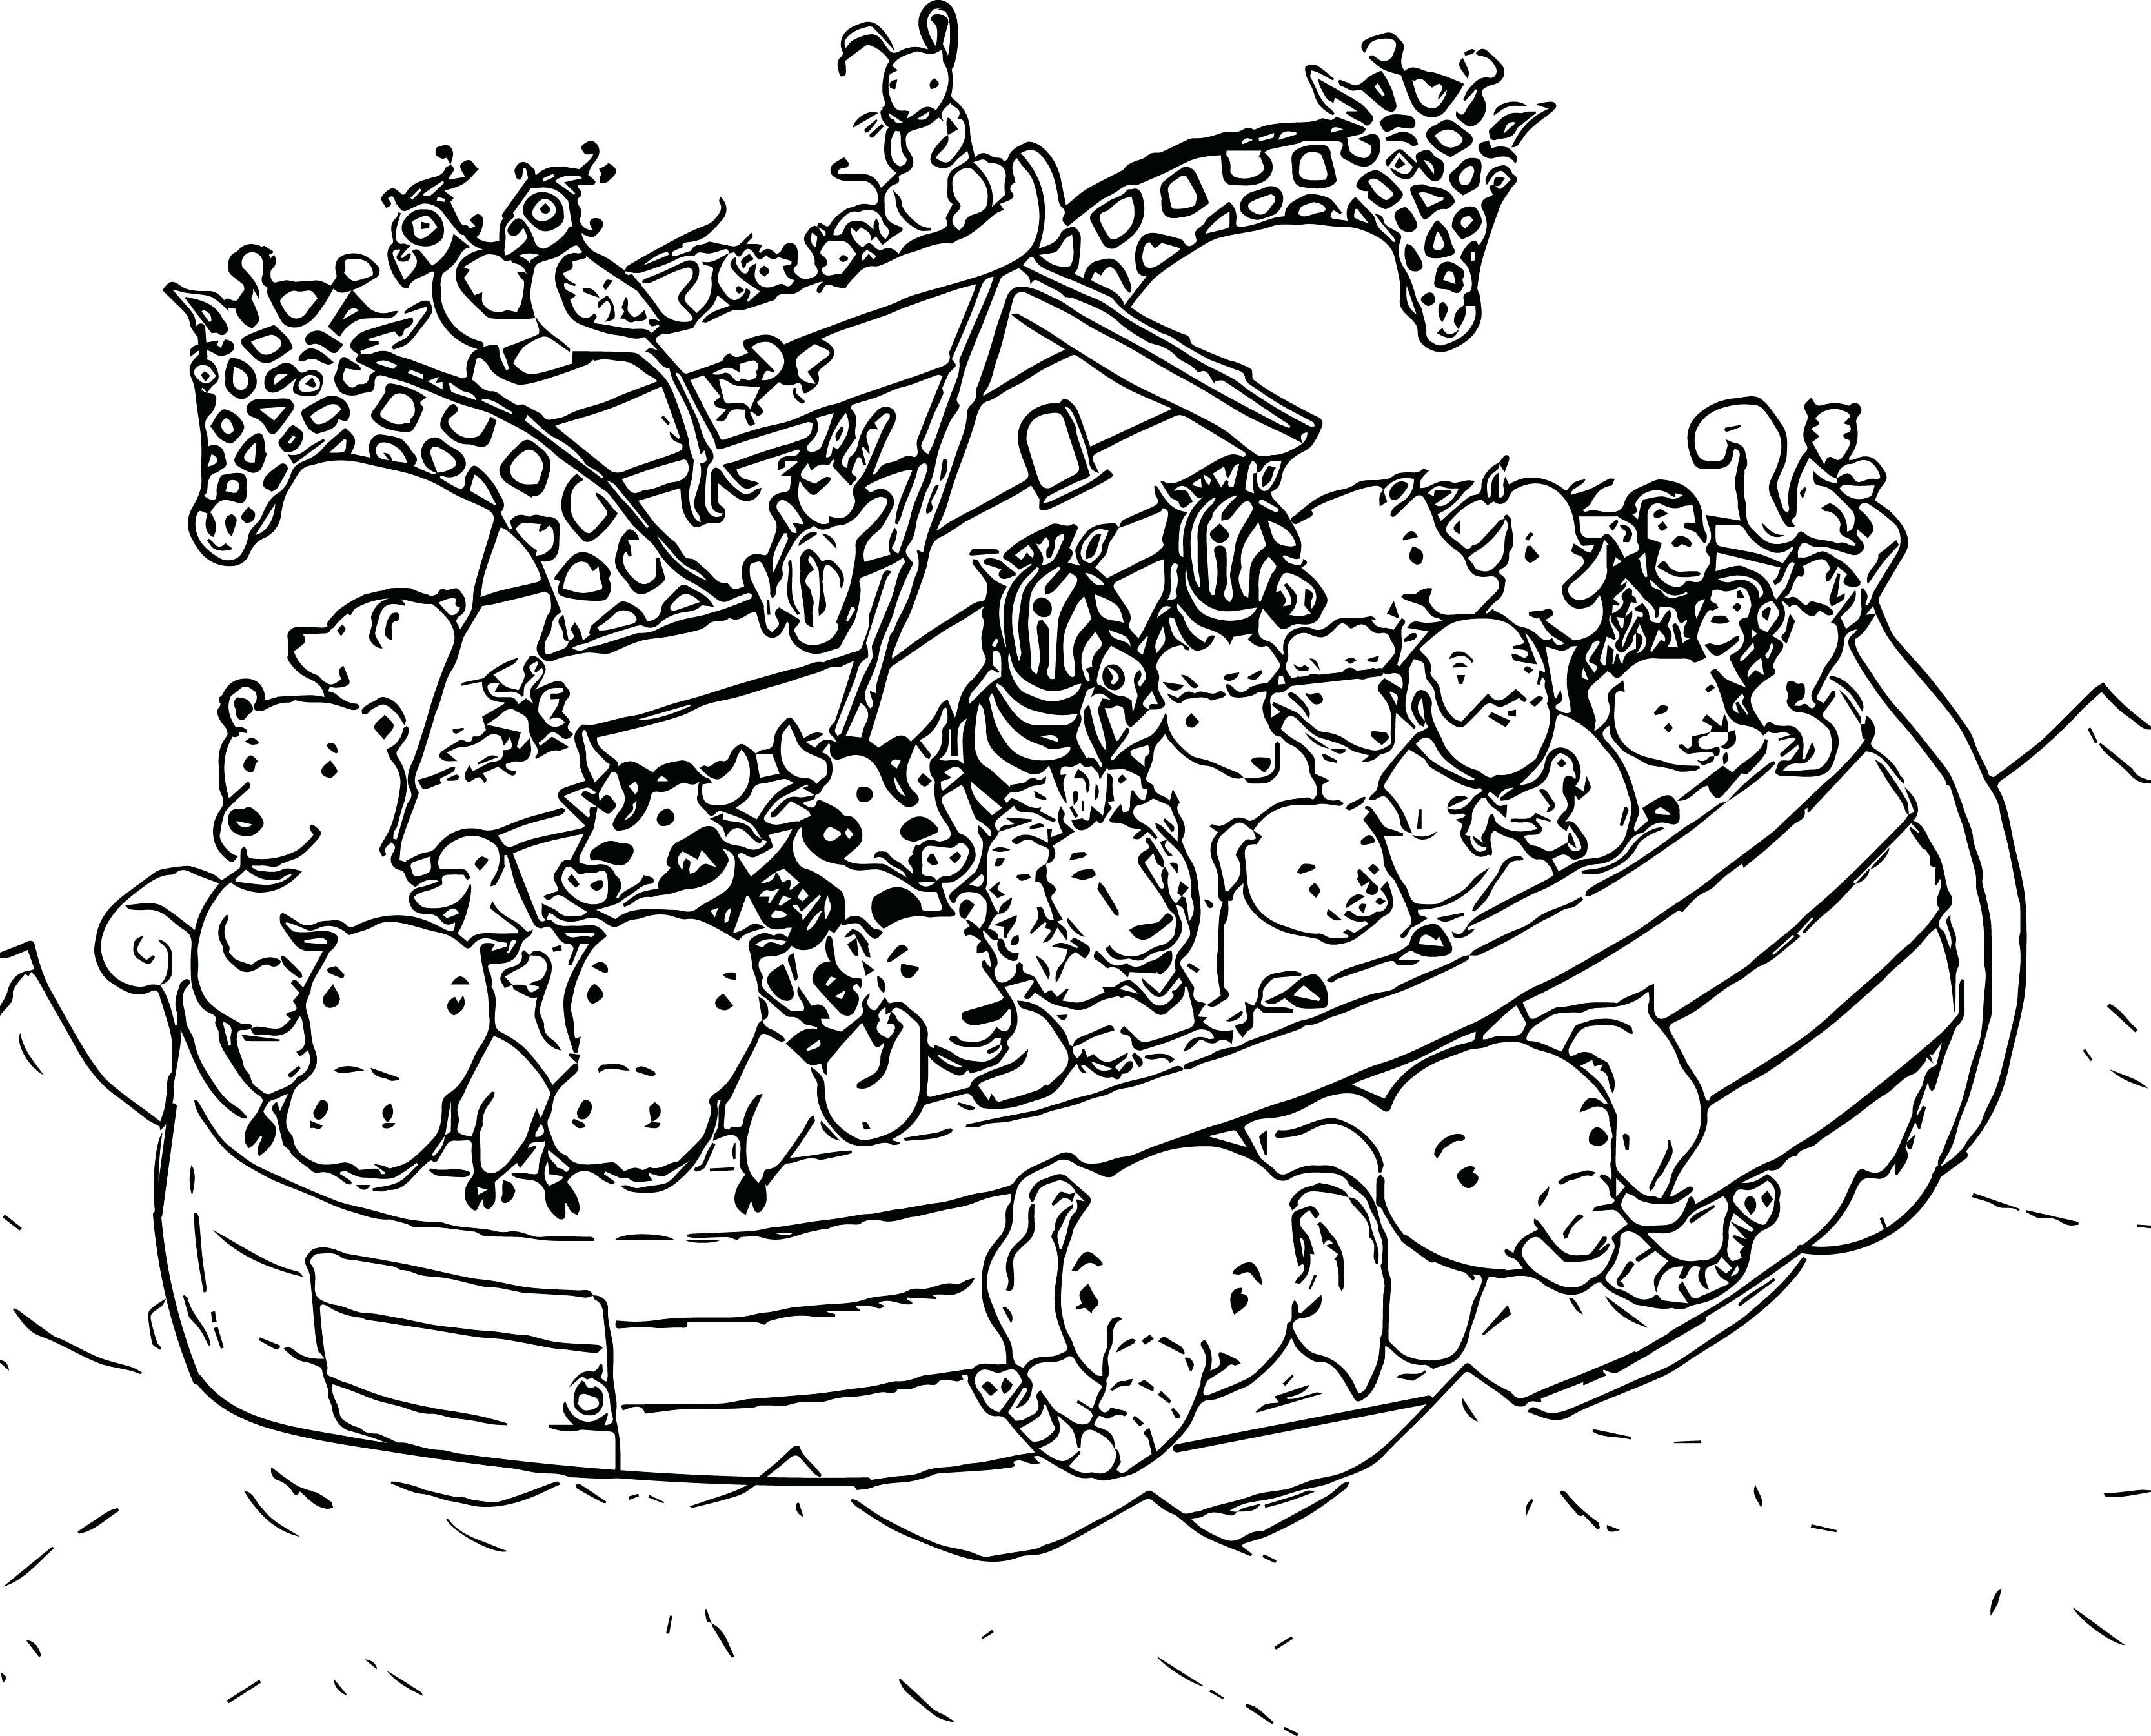 Noahs Ark Coloring Page Coloring Pages | Animal coloring ...